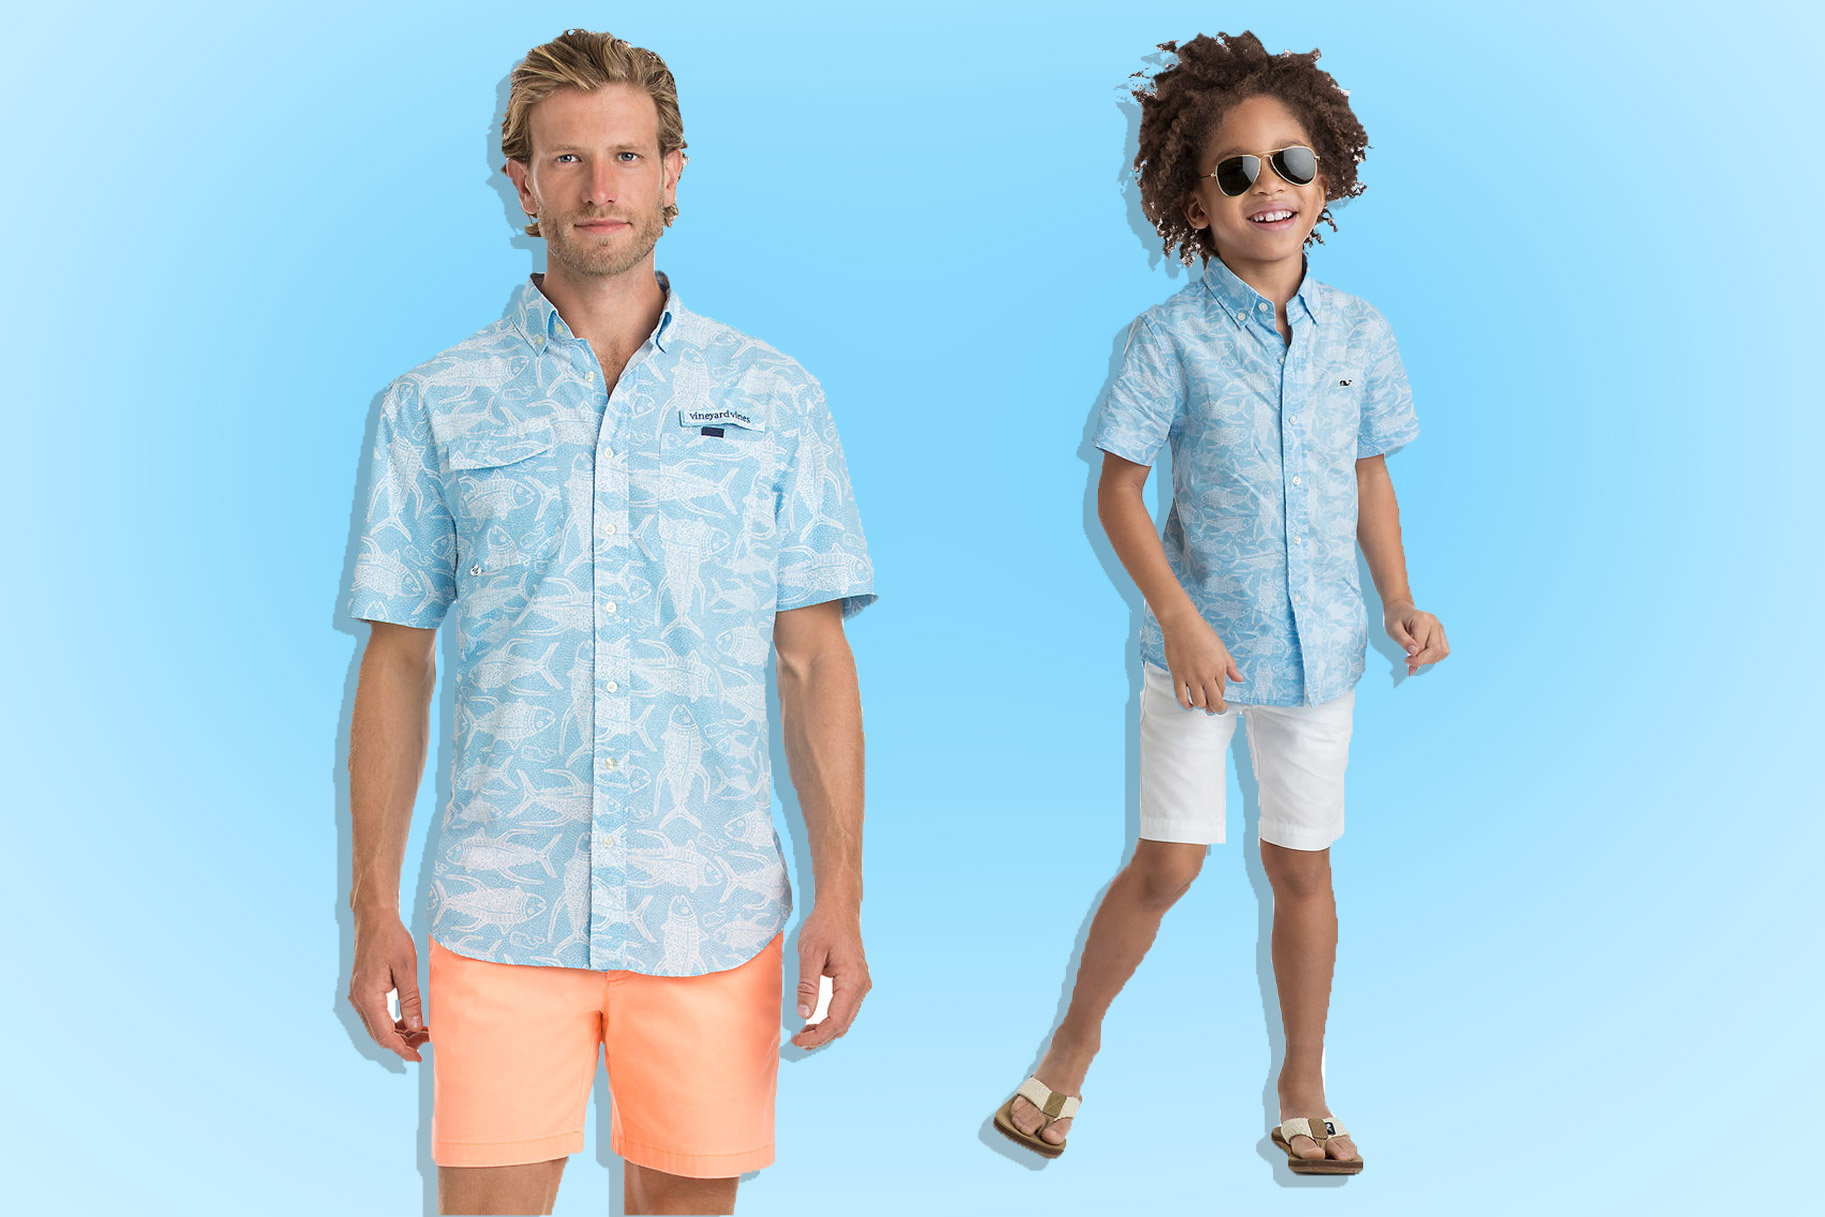 94a01e199 Here's How You Get Them to Agree on Matching Outfits This Father's Day